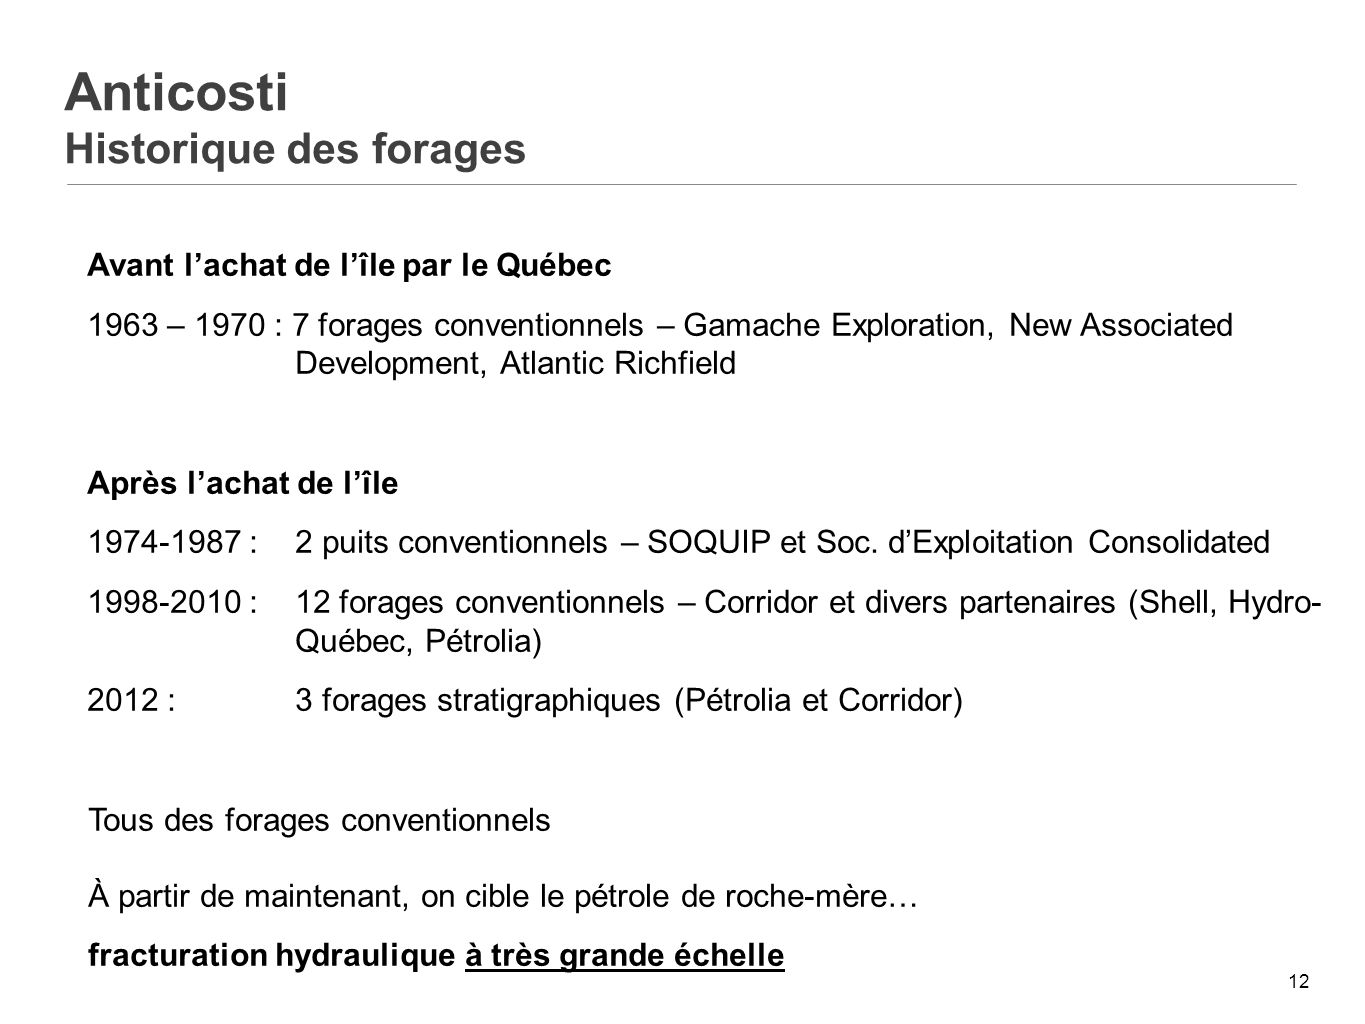 12 Anticosti Historique des forages Avant lachat de lîle par le Québec 1963 – 1970 : 7 forages conventionnels – Gamache Exploration, New Associated Development, Atlantic Richfield Après lachat de lîle 1974-1987 :2 puits conventionnels – SOQUIP et Soc.